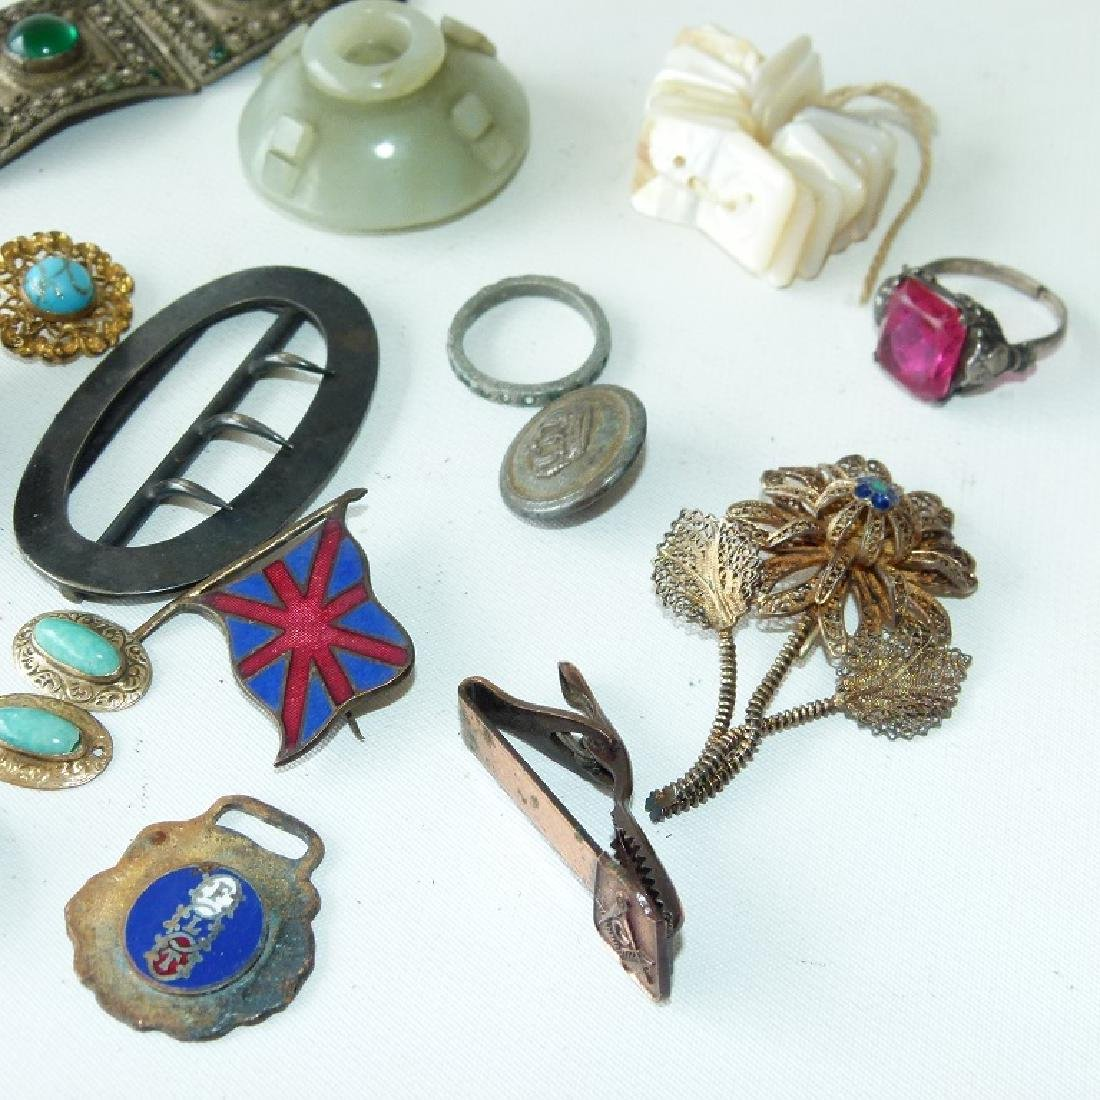 LOT ASSORTED VICTORIAN RINGS/FINDINGS 19/20TH C. - 8